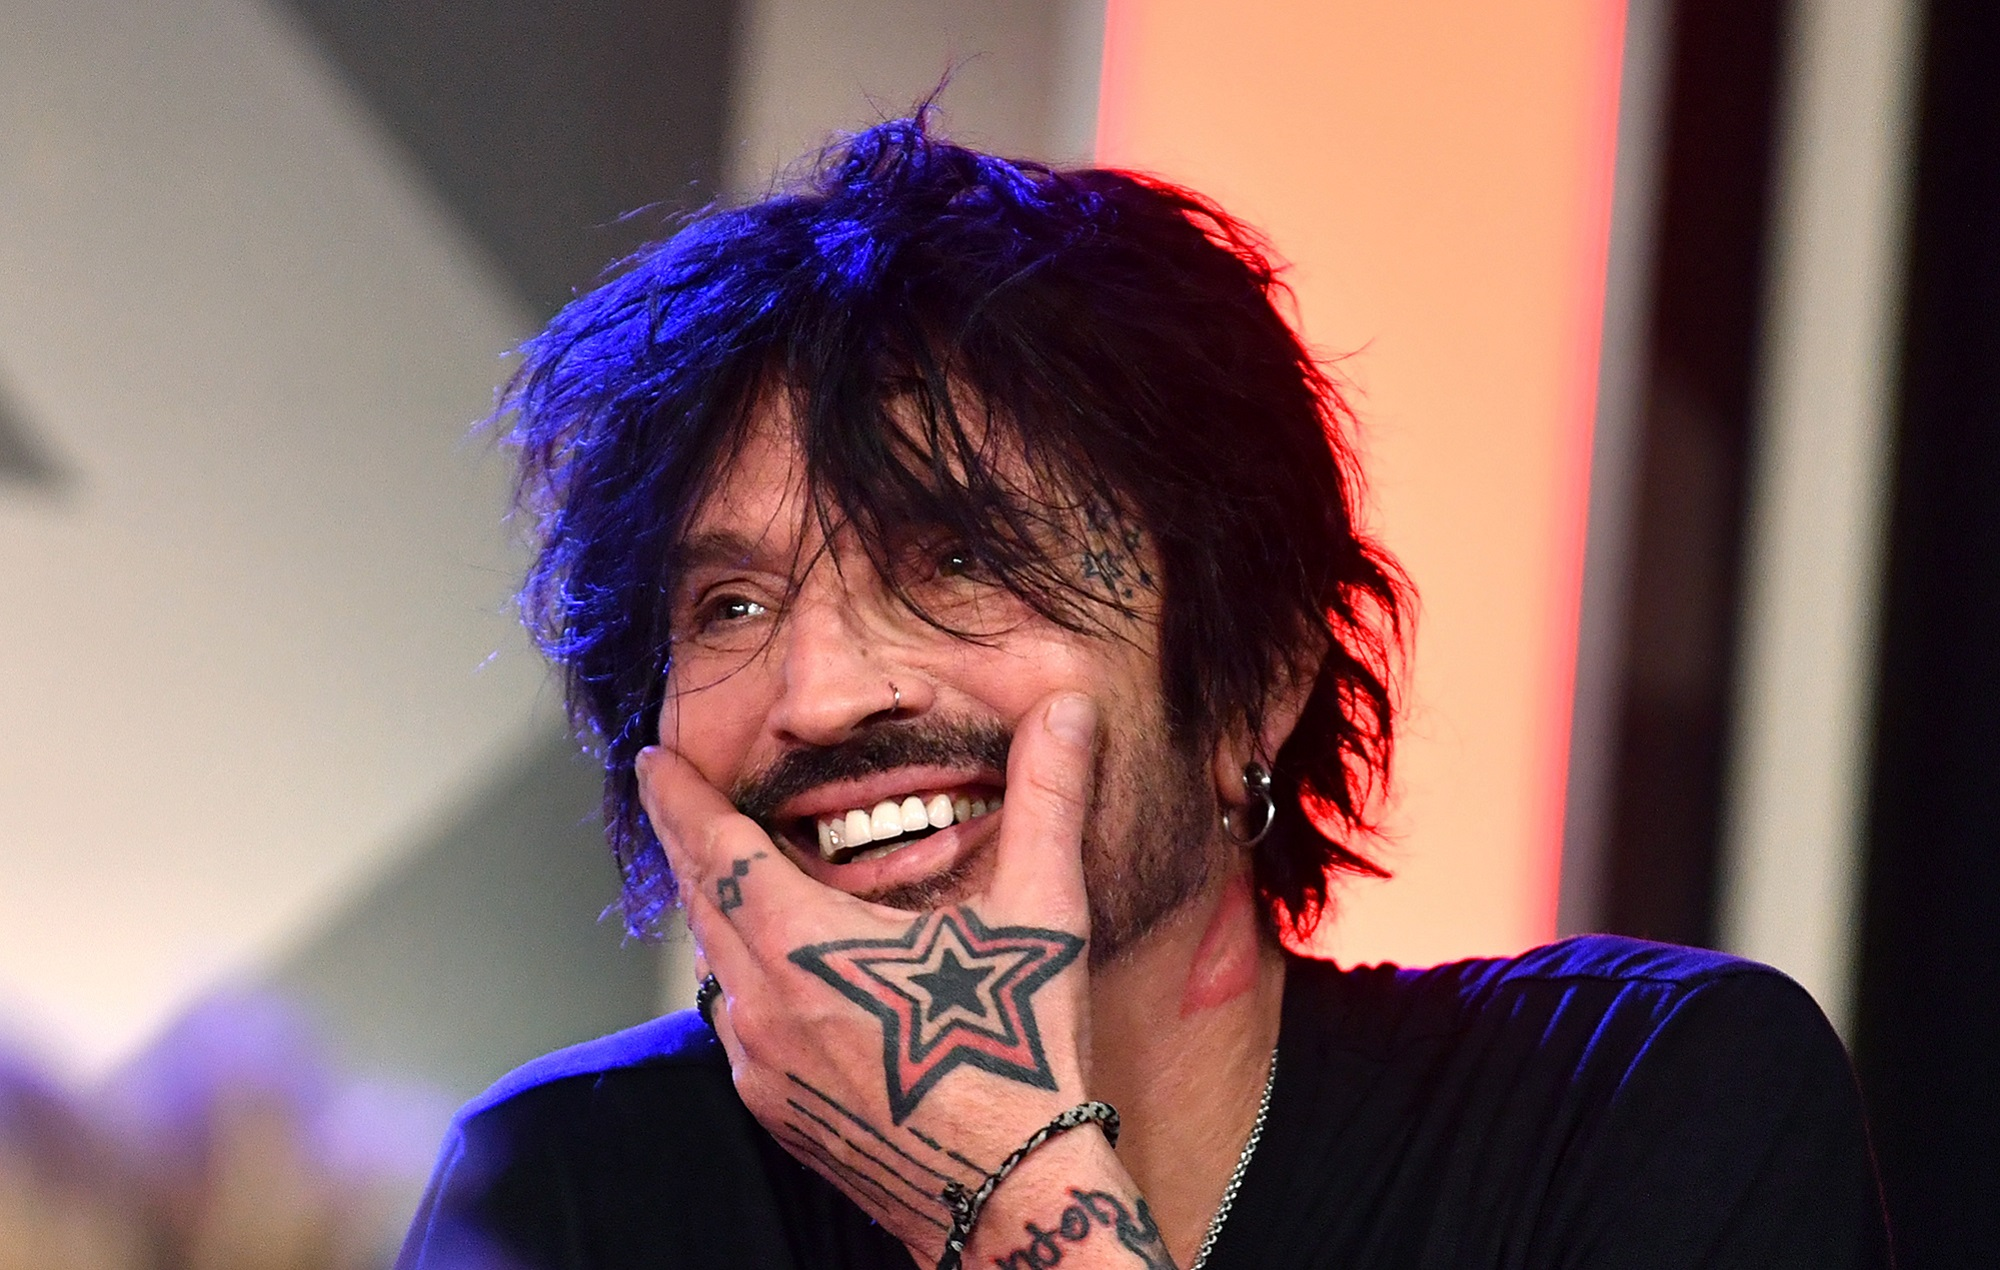 Hear two new solo tracks from Mötley Crüe's Tommy Lee